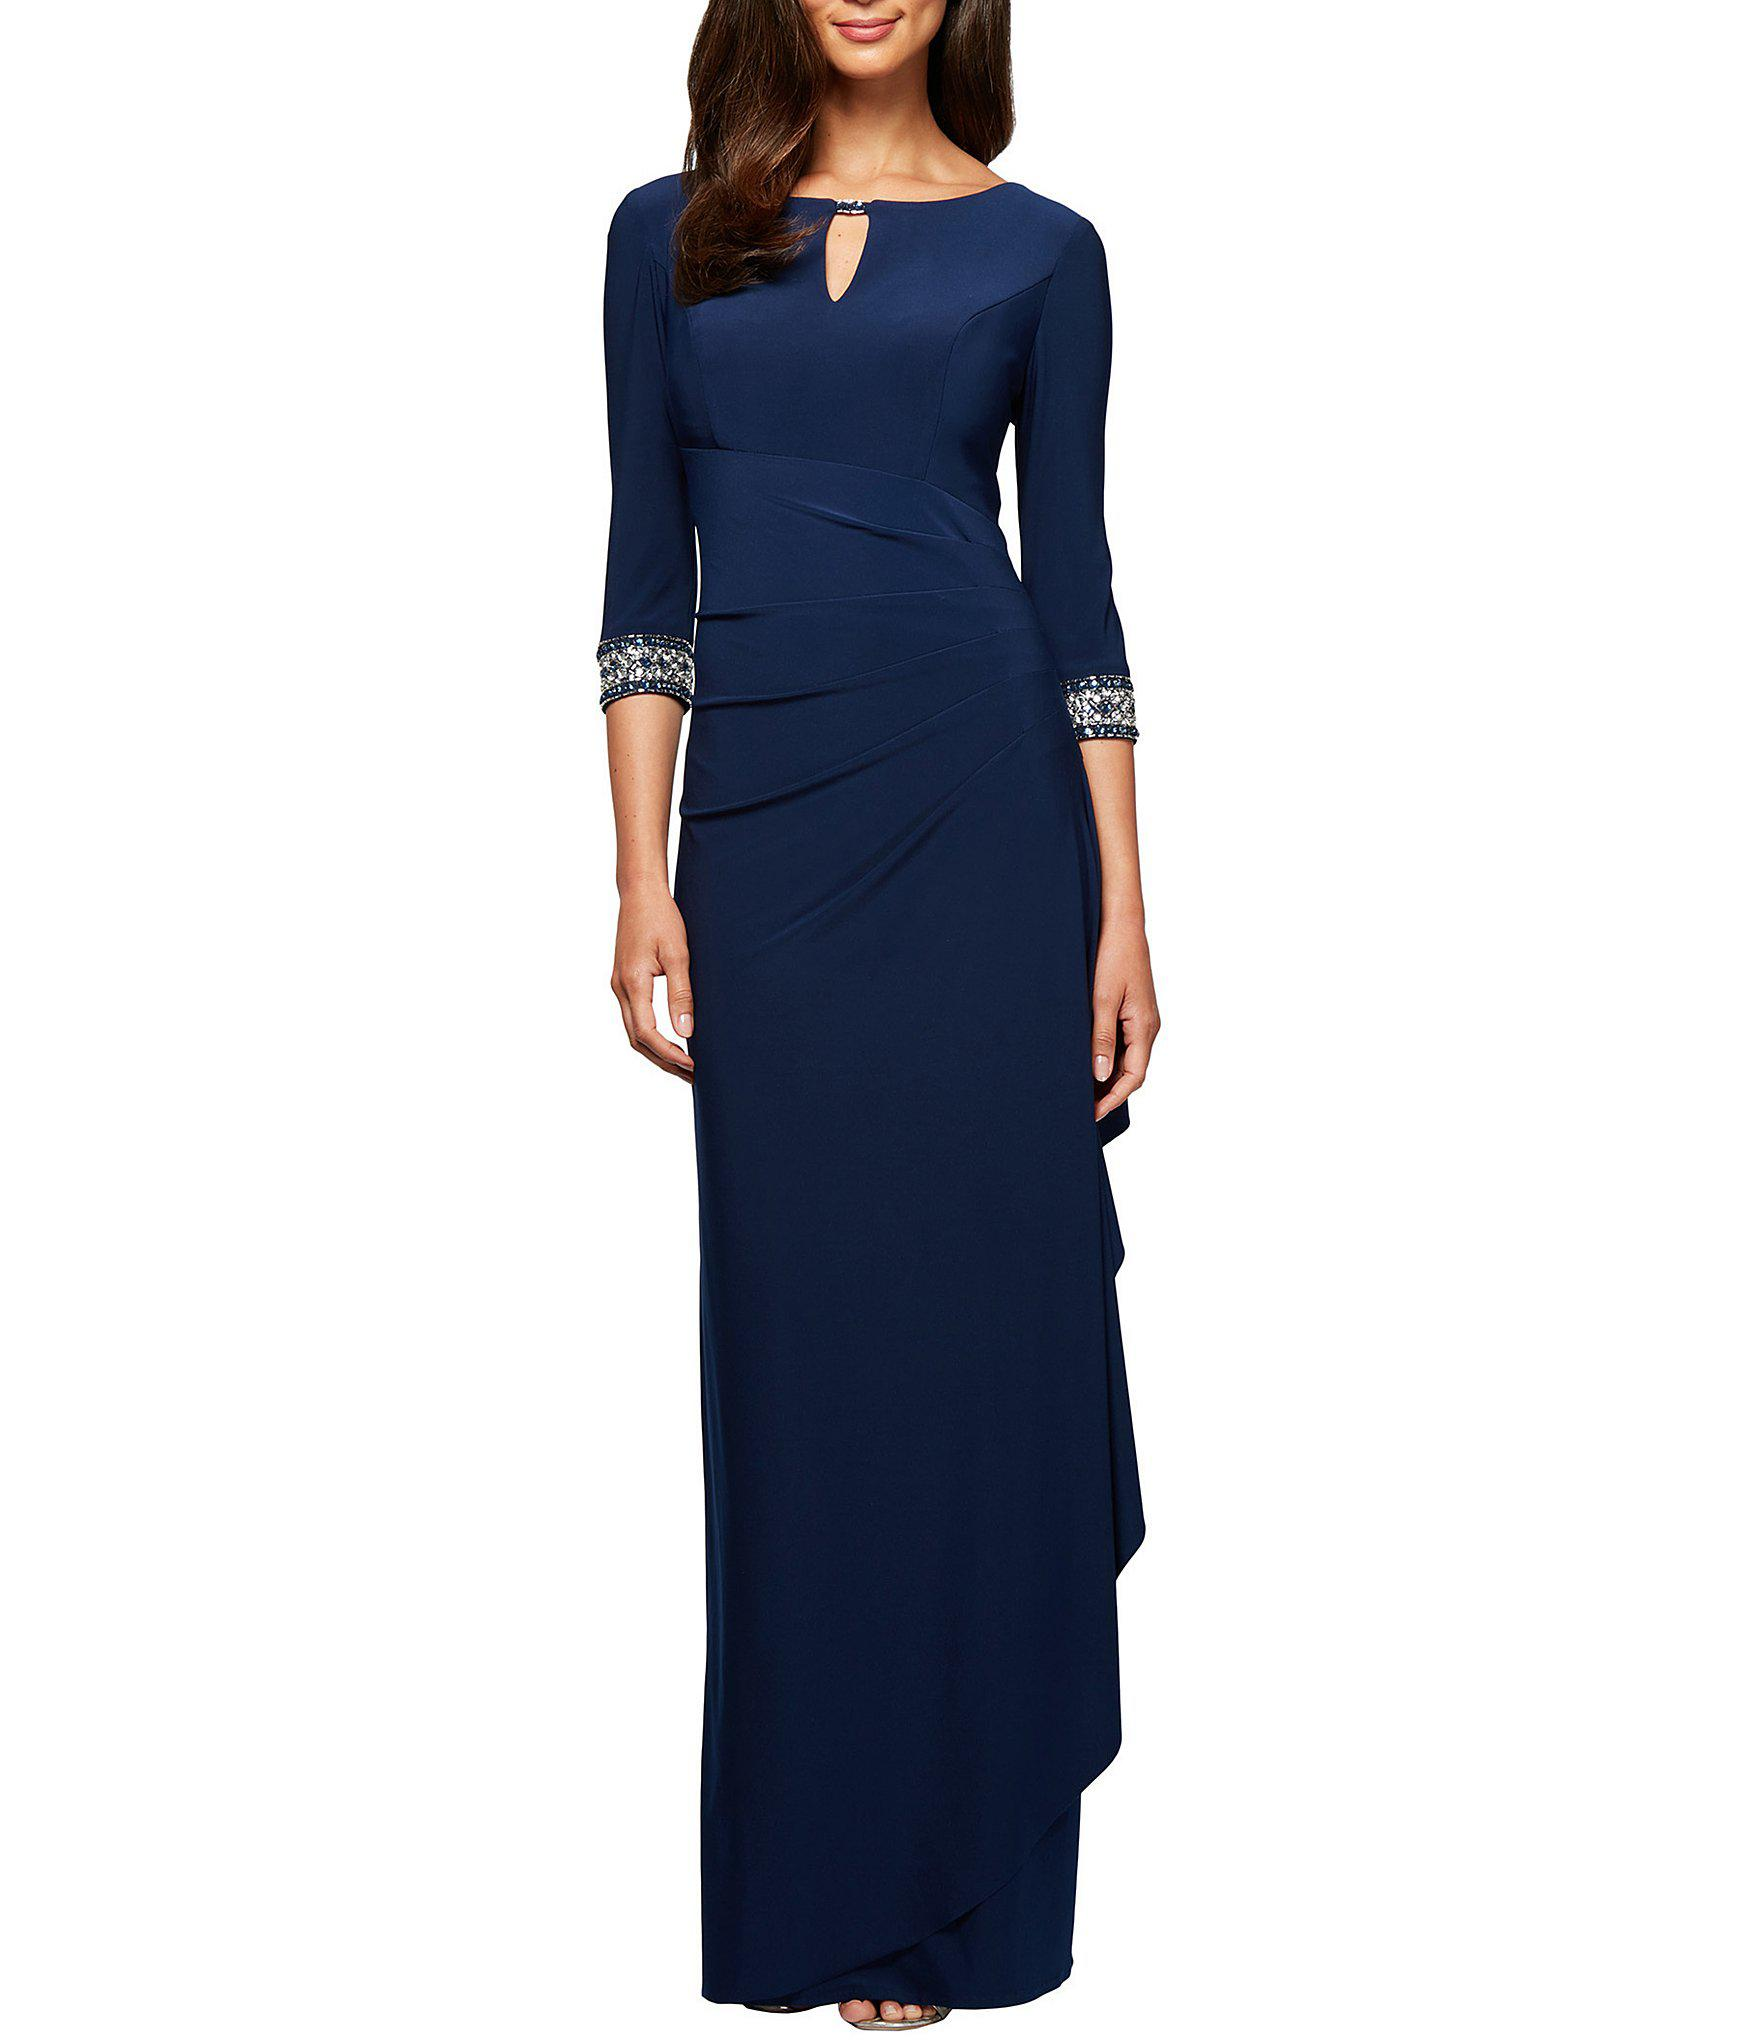 e180f9762483f Alex Evenings. Women s Blue Petite Size Side Ruched Embellished Cuff Gown